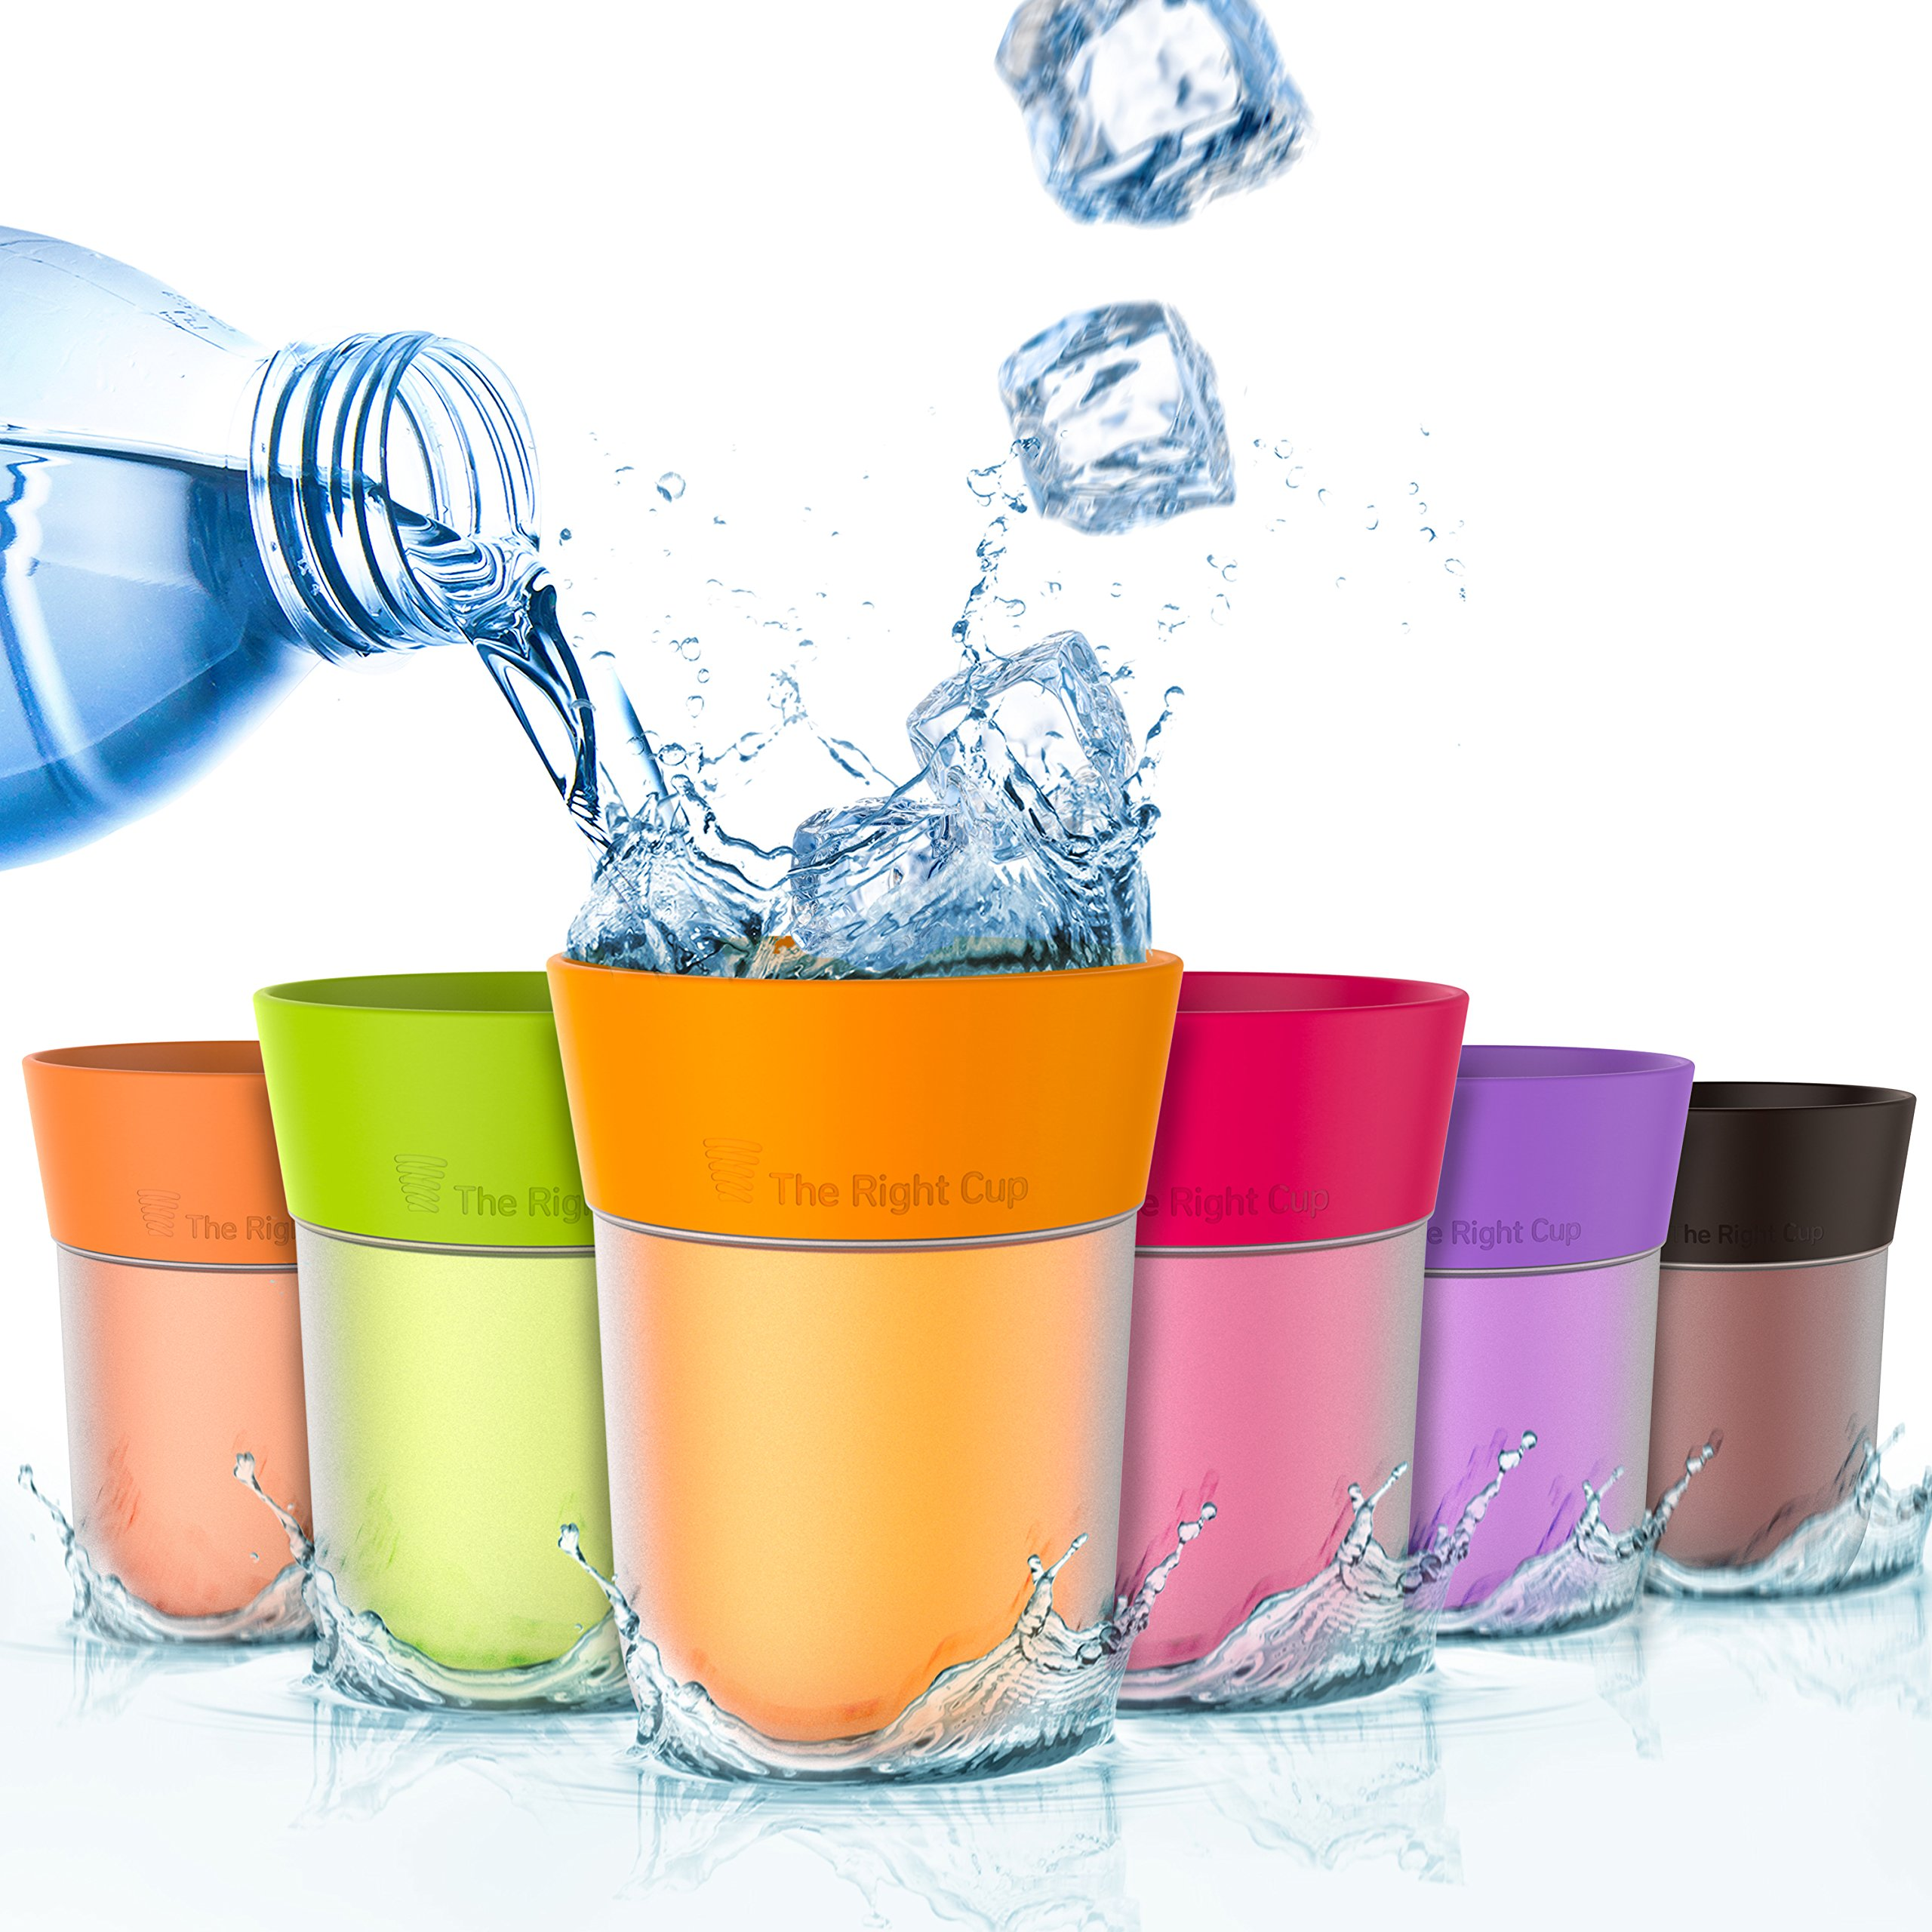 Flavor Enhancing water Cup- Pack of 6 flavored cups - Orange, Cola, Berry, Apple, Peach and Grape. Helps you drink water instead of soda. by The Right Cup